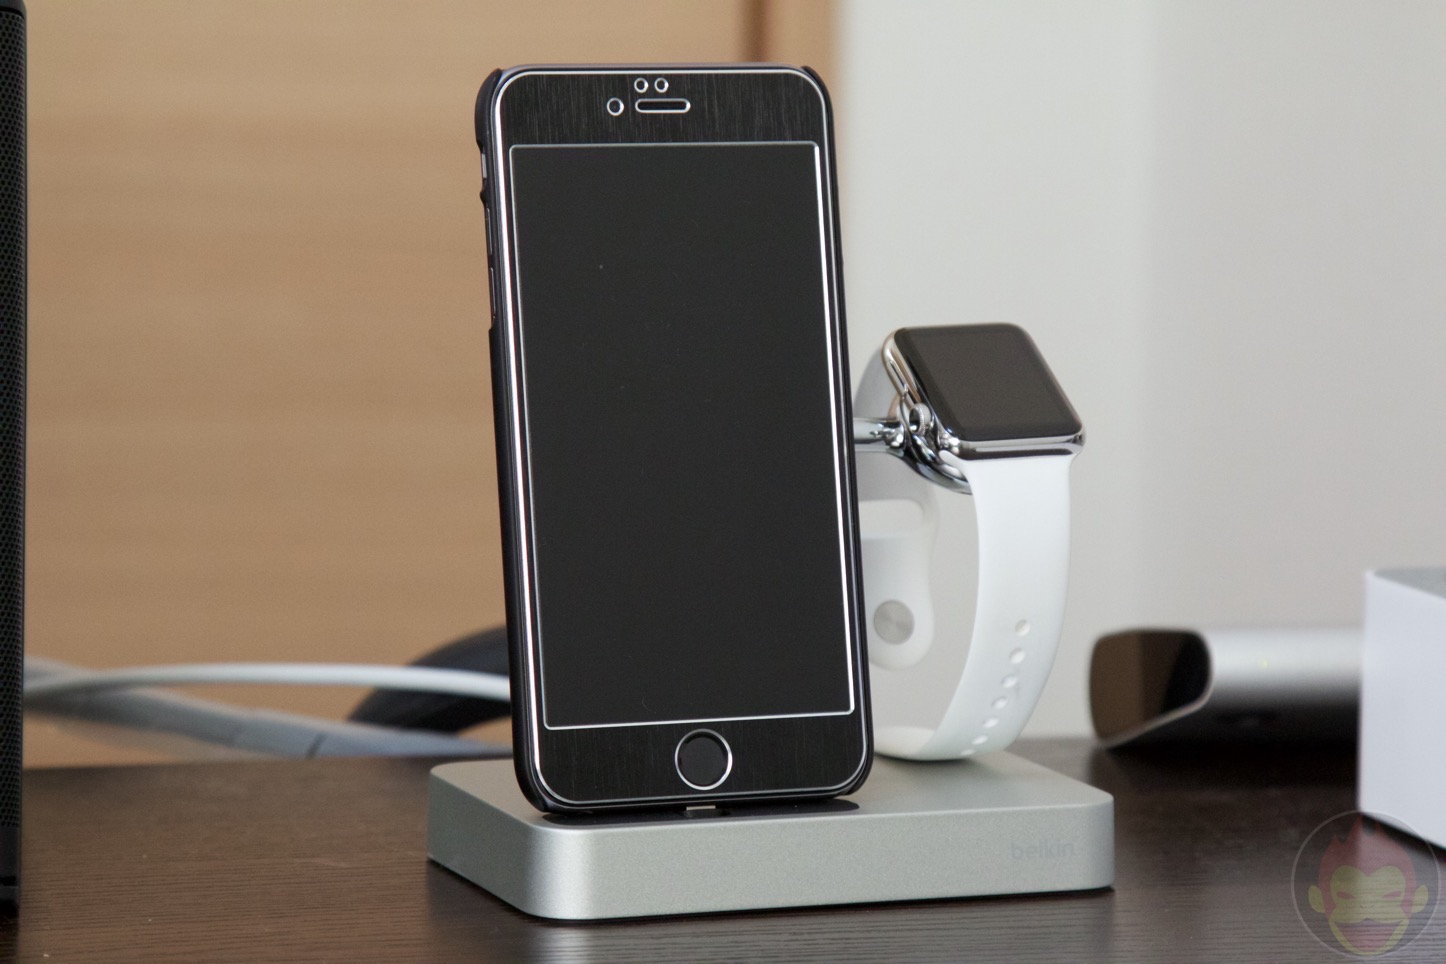 Belkin-Charge-Dock-for-iPhone-and-Apple-Watch-08.jpg